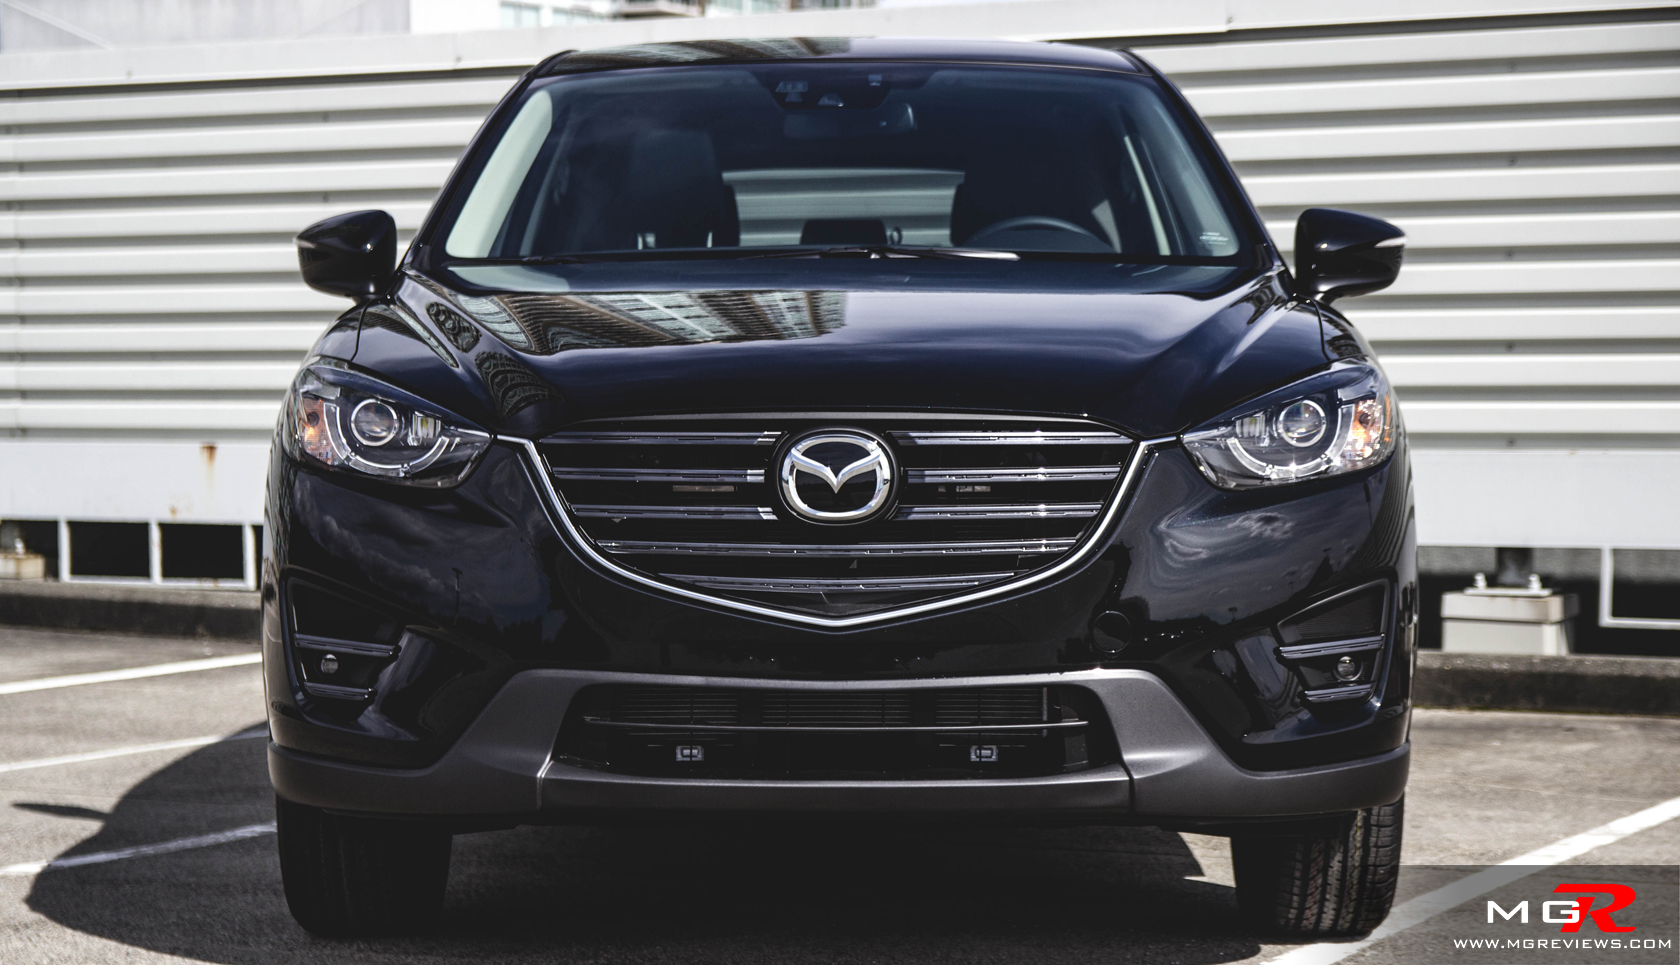 review 2016 mazda cx 5 gt m g reviews. Black Bedroom Furniture Sets. Home Design Ideas